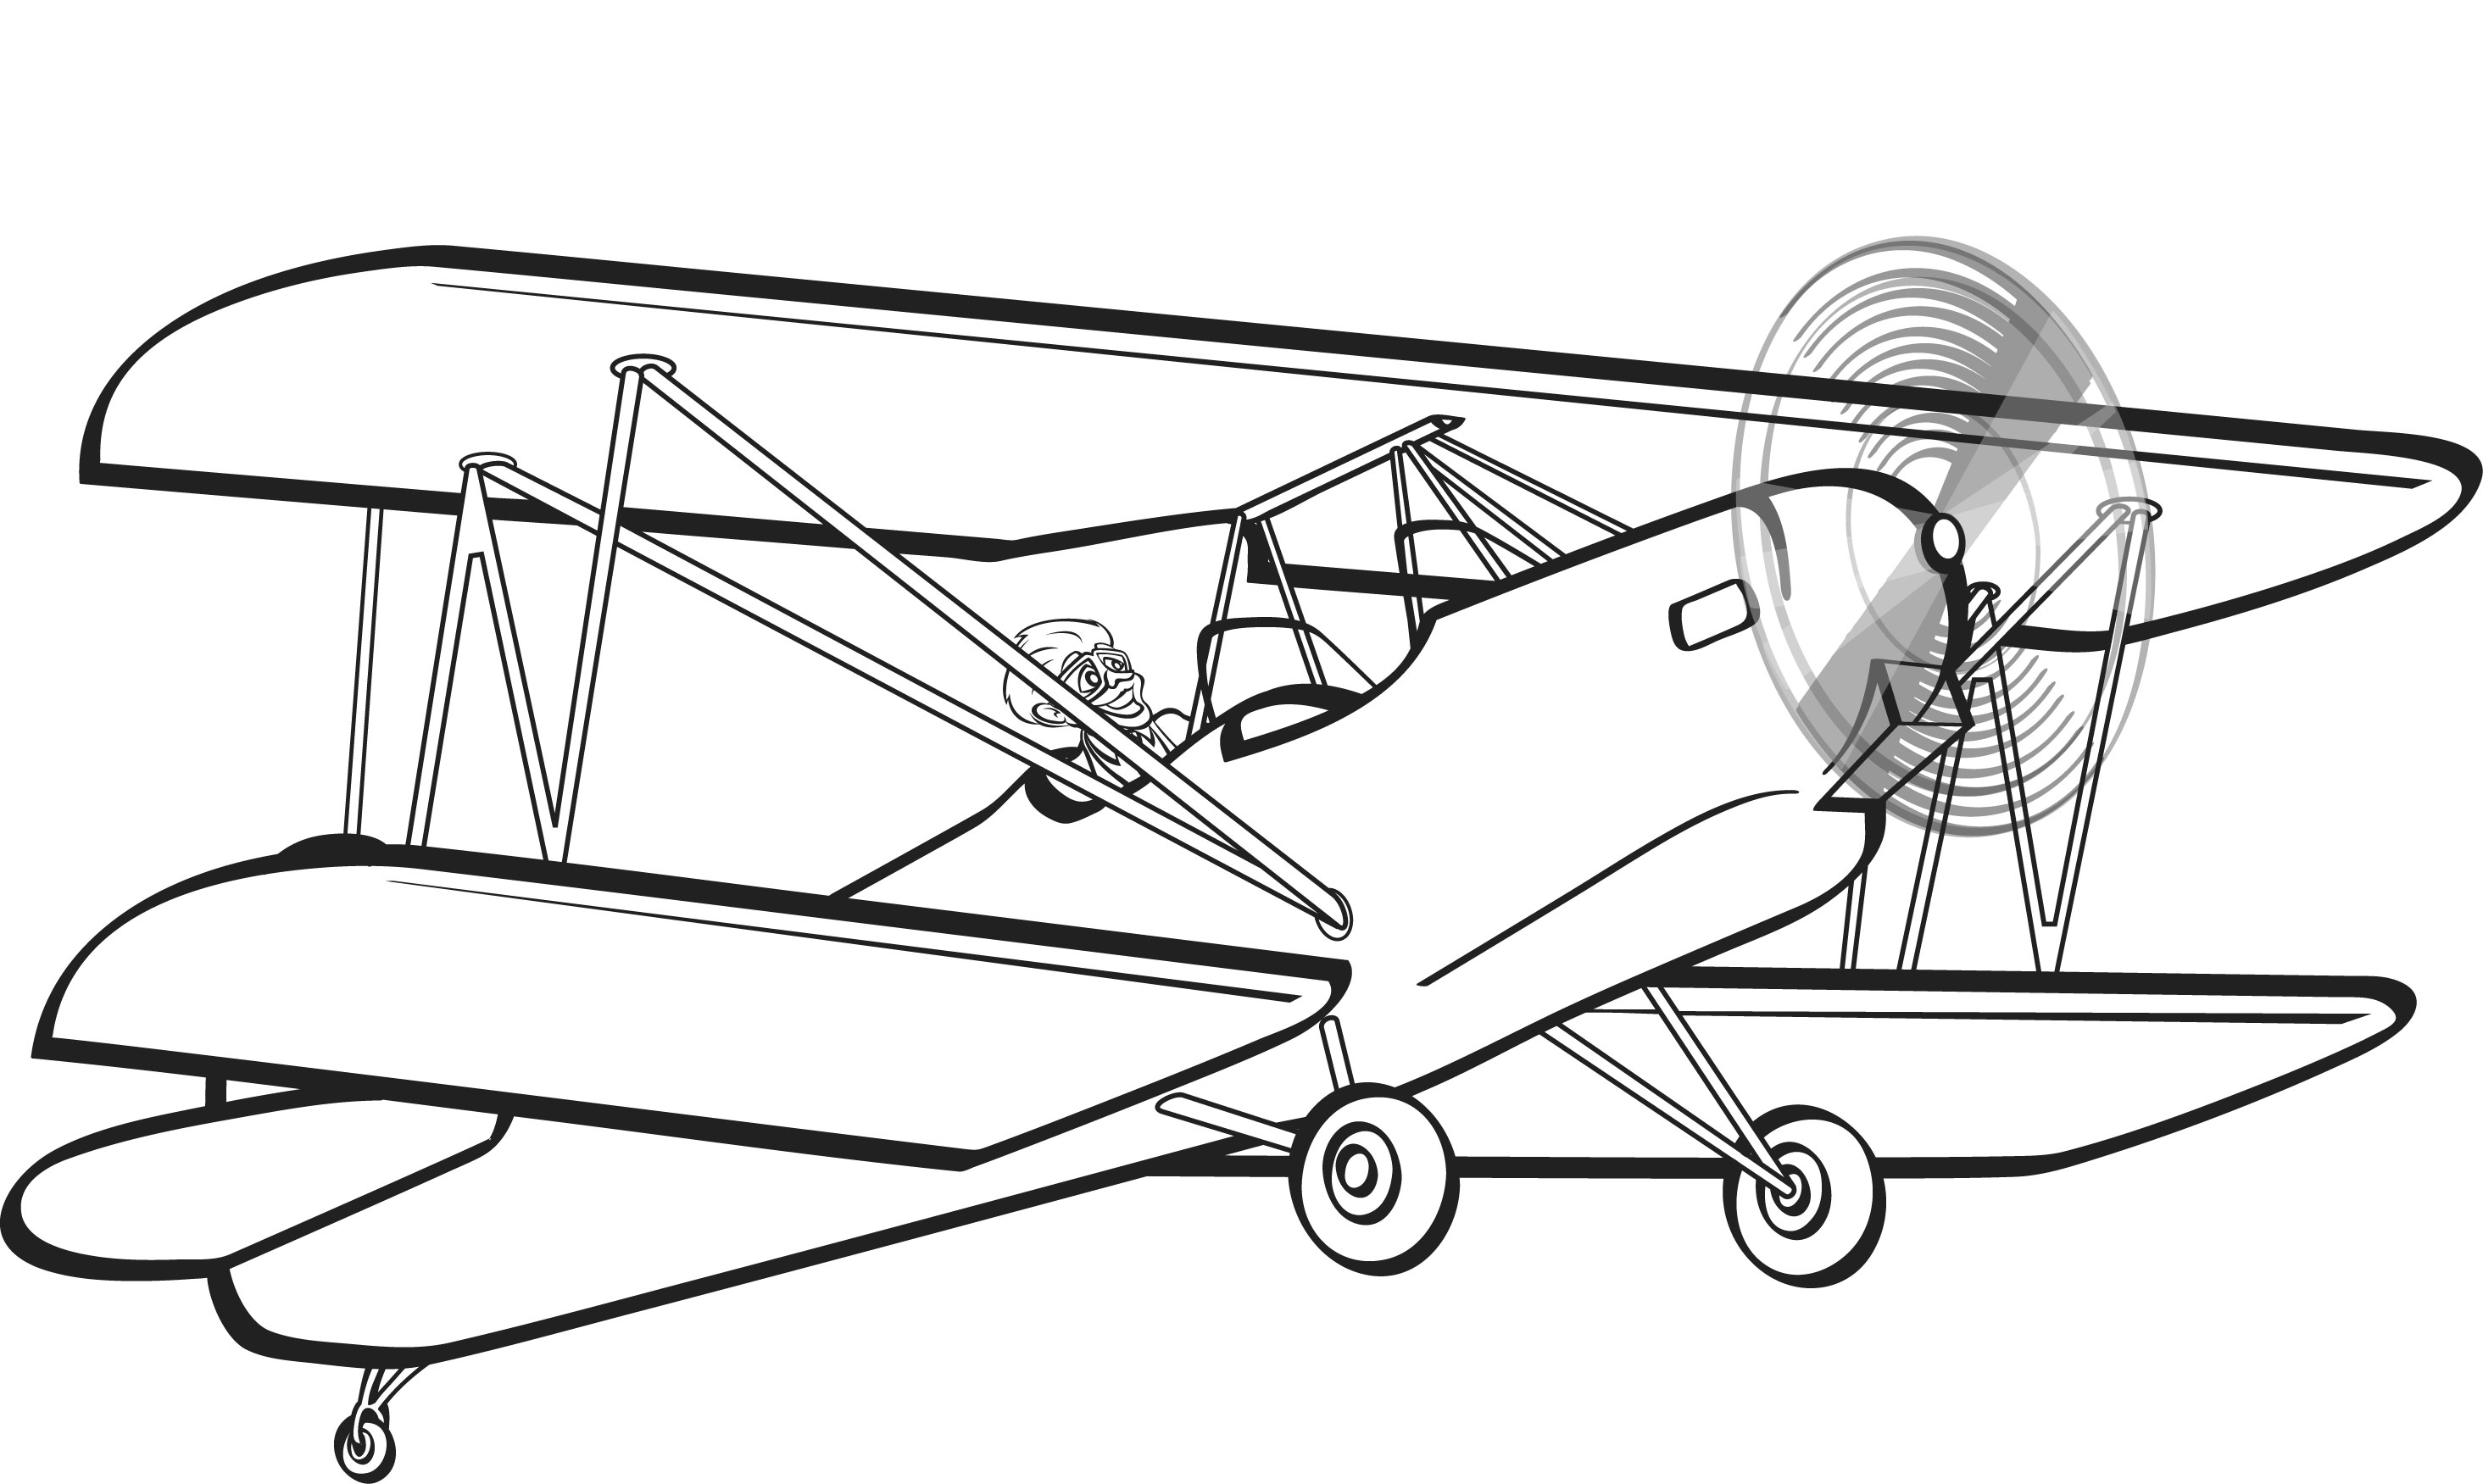 airplane clipart coloring coloring pages for kids airplane coloring pages coloring clipart airplane